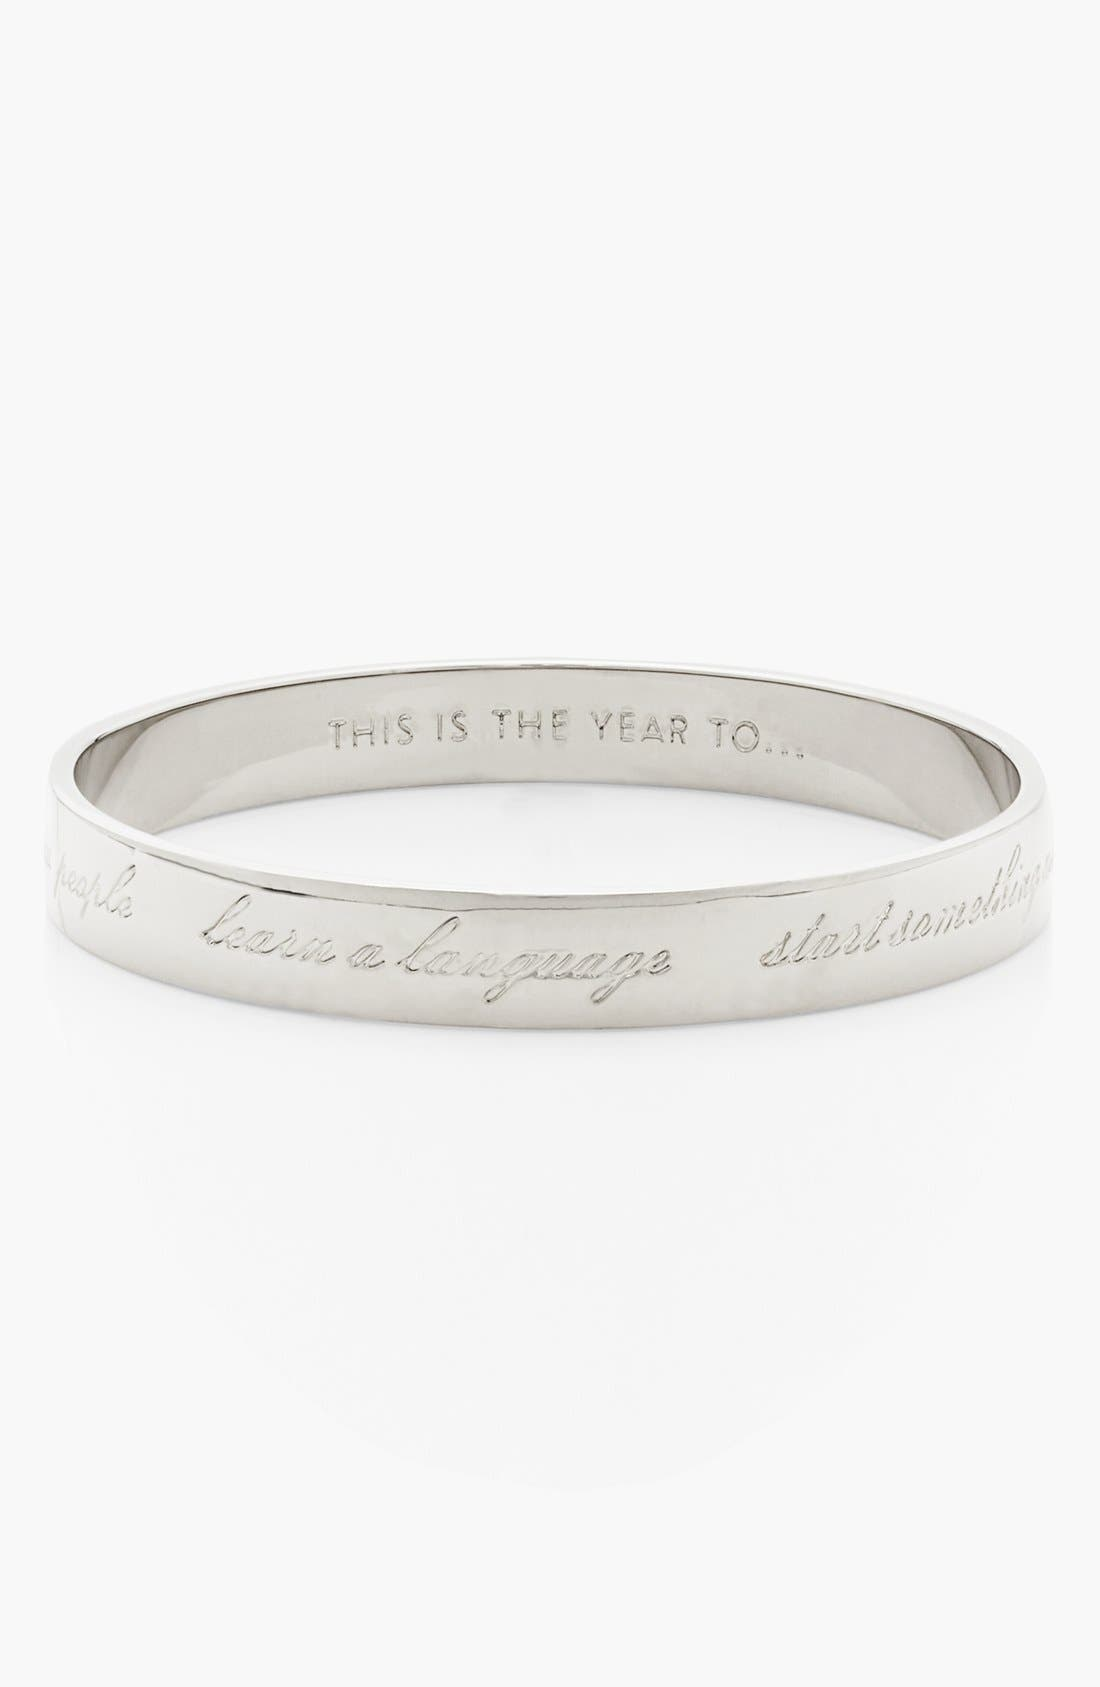 KATE SPADE NEW YORK,                             'idiom - this is the year to...' thin bangle,                             Main thumbnail 1, color,                             040